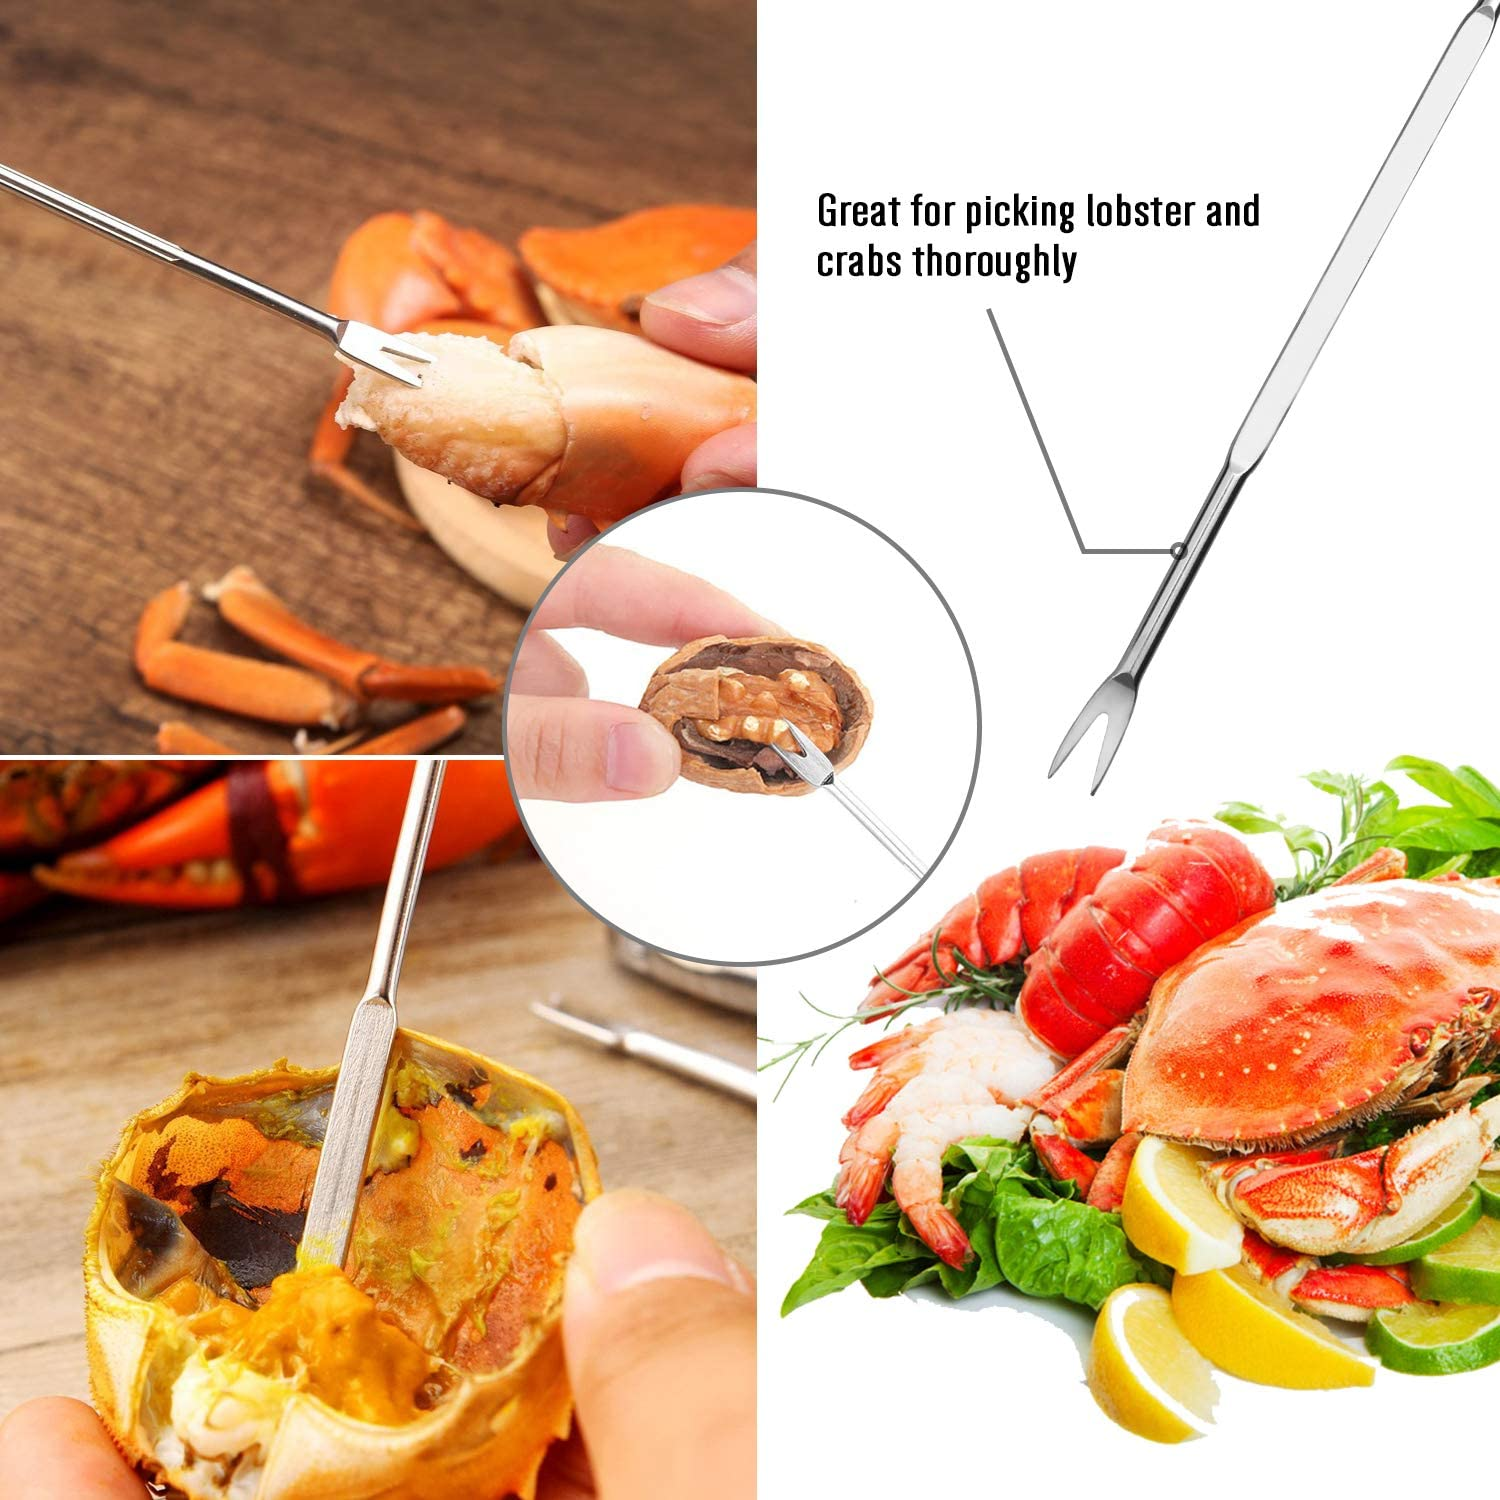 4 Lobster Shellers 4 Crab Forks//Picks and 1 Portable Bag Dishwasher Safe Hiware 13-piece Crab /& Lobster Crackers and Tools Set Includes 4 Crab Leg Crackers